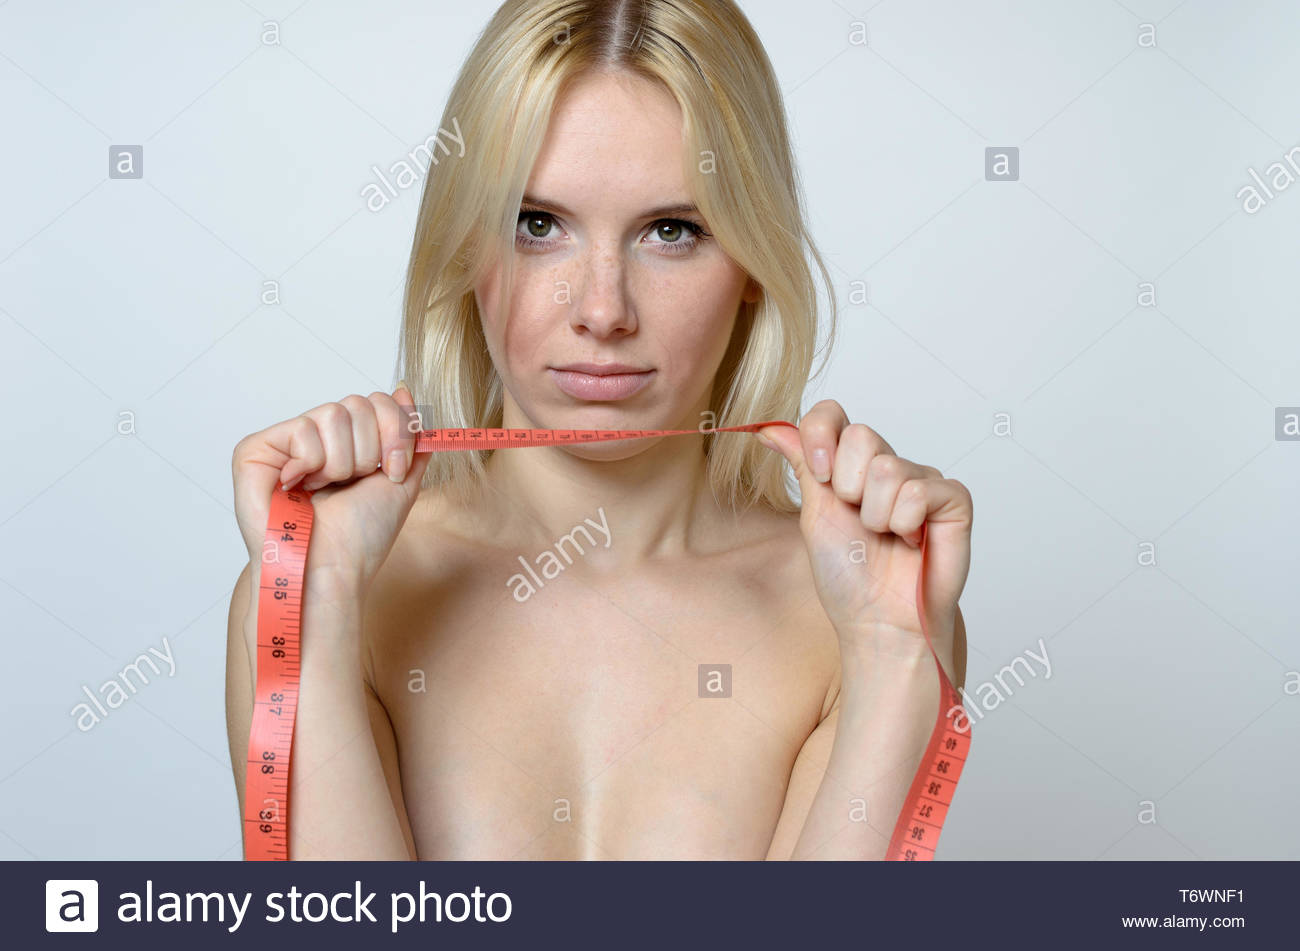 Bare Young Woman holding a Measuring Tape Stock Photo